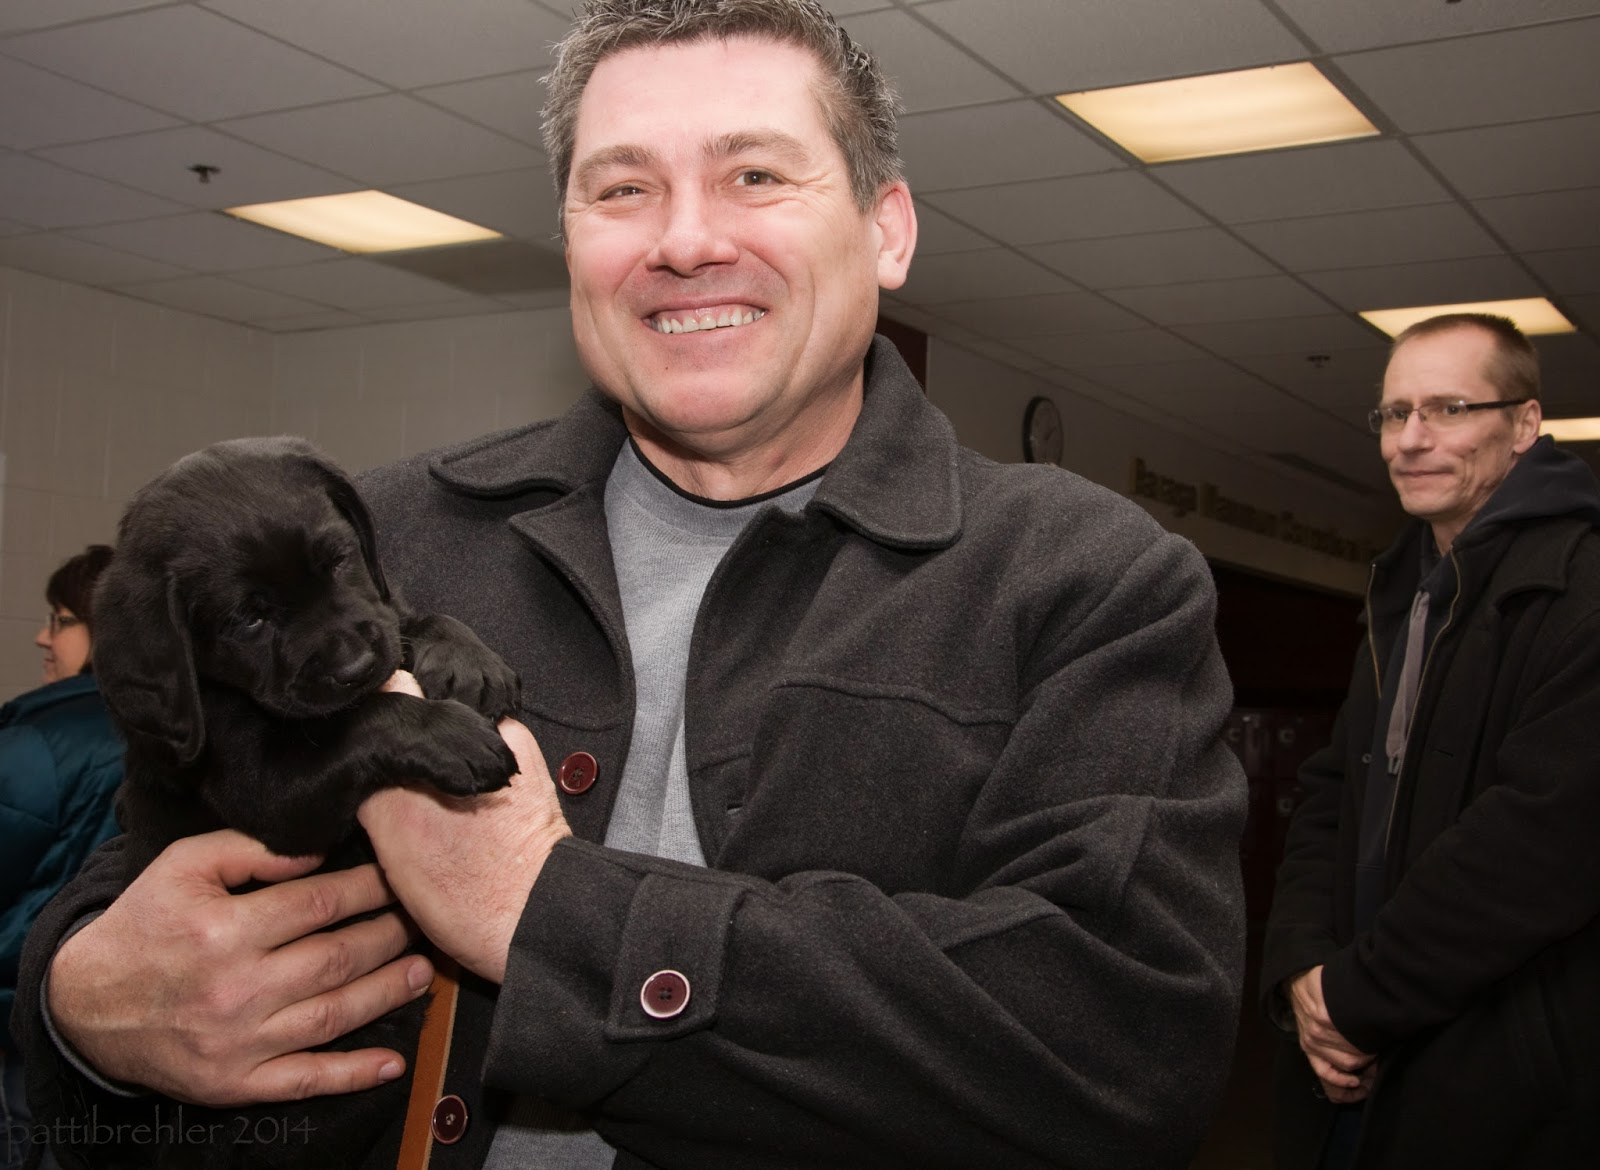 The samll black lab is now being held in the arms of another man. The shot is taken from his chest up. The man is wearing a black jacekt and grey sweatshirt. He has short dark hair and is smiling at the camera. The puppy looks relaxed and has his front paws on the man's lett hand. In the background is the man with glasses from the first photo. He is standing on the right side looking at the man with the puppy and is smiling. He is holding his hands together in front of him. At the top on either side of the man holding the puppy are the lights in the white tiled ceiling.